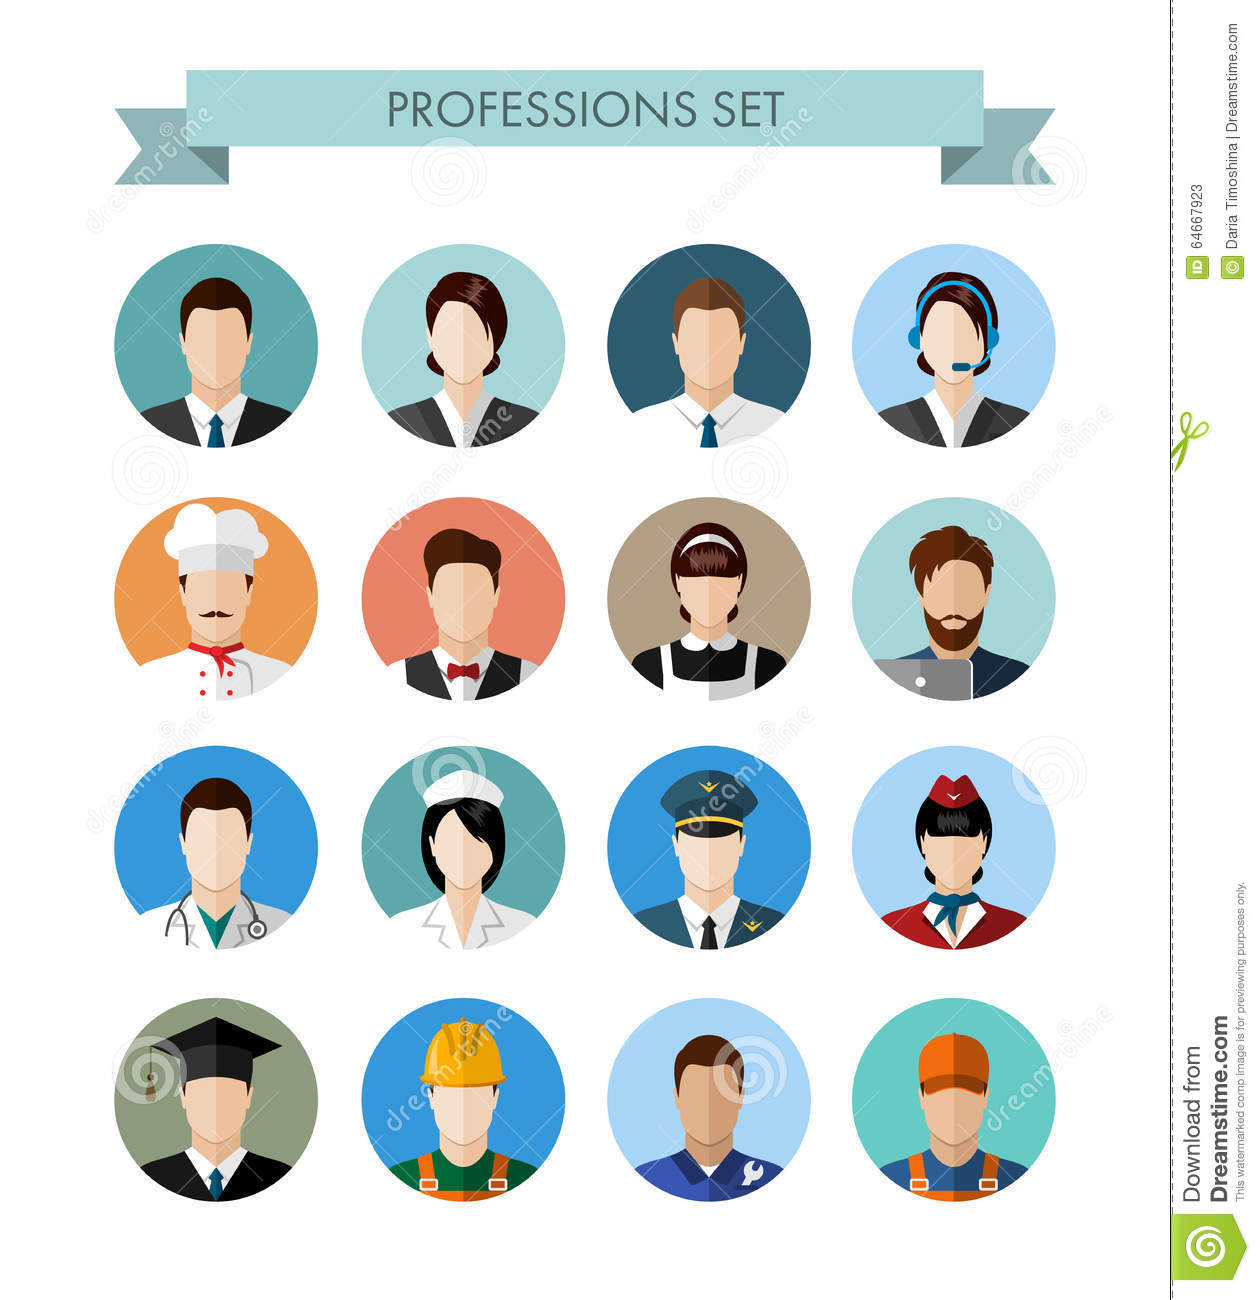 A set of professions people